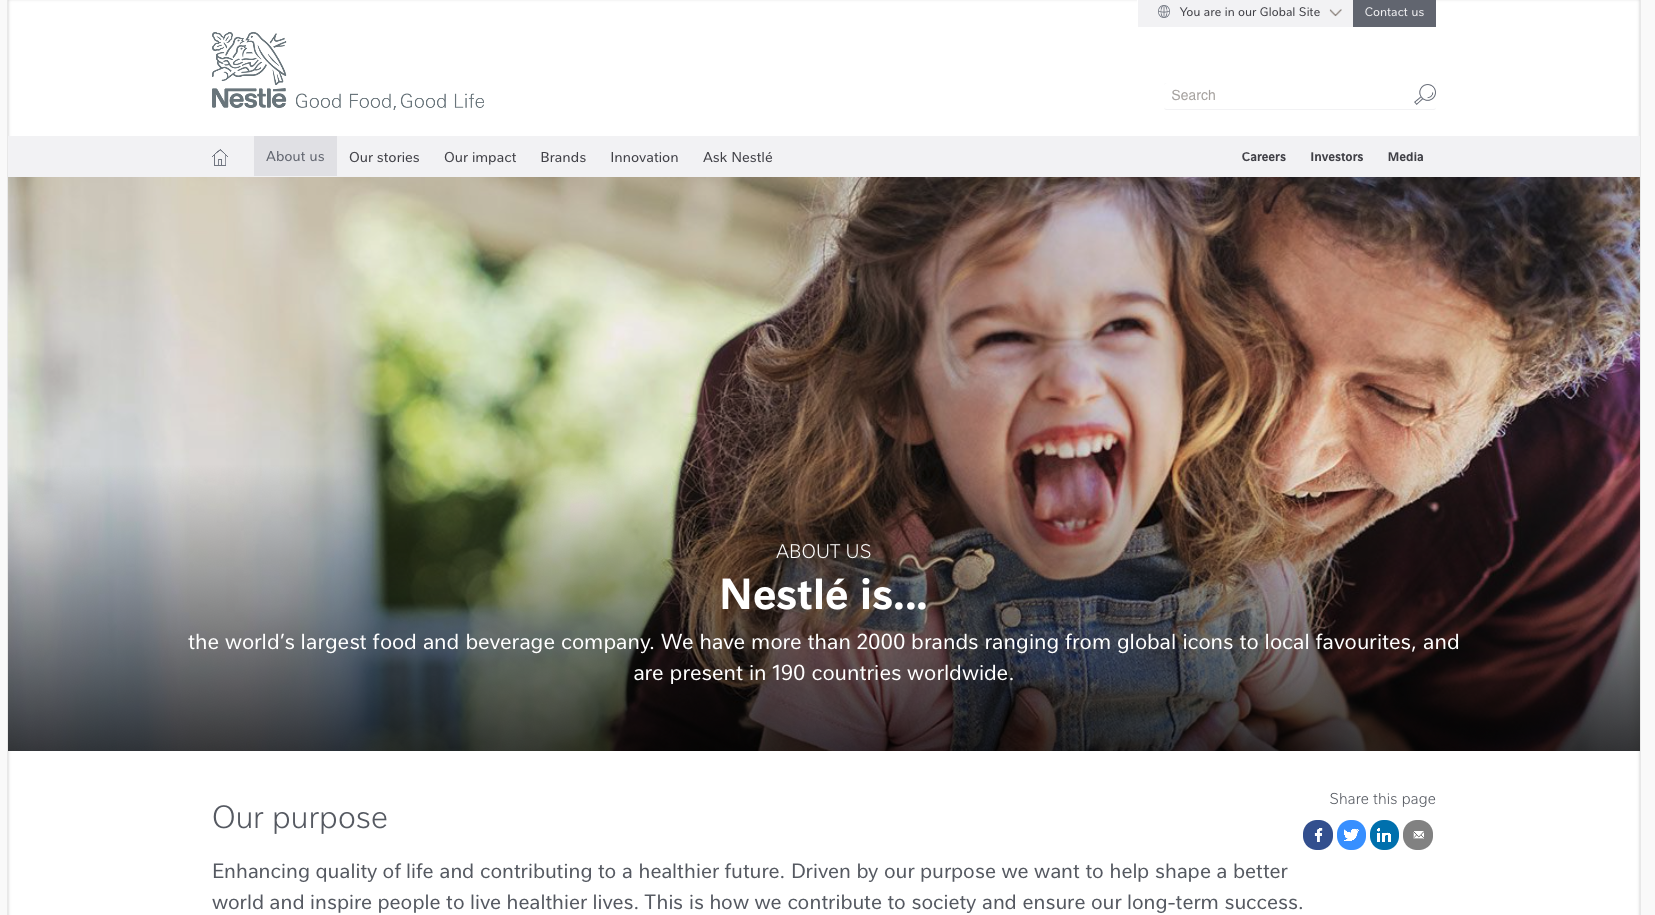 Nestlé offers a great deal of good information on nestle.com about the company - what it does, how it is managed, its purpose and so on. History is very well covered (including several innovative features, such as a customisable timeline, 'Your life in food'), and the main history timeline is now more engaging after a redesign. Nestlé also acts convincingly like a company with an international mindset, interested in engaging with a genuinely global stakeholder base. The main corporate site is in English only, but with much key information translated into relevant other languages. There is clear evidence of communication between the corporate centre and country site editors; indeed, content sharing between these sites appears to be stronger than ever after the estate-wide redesign.